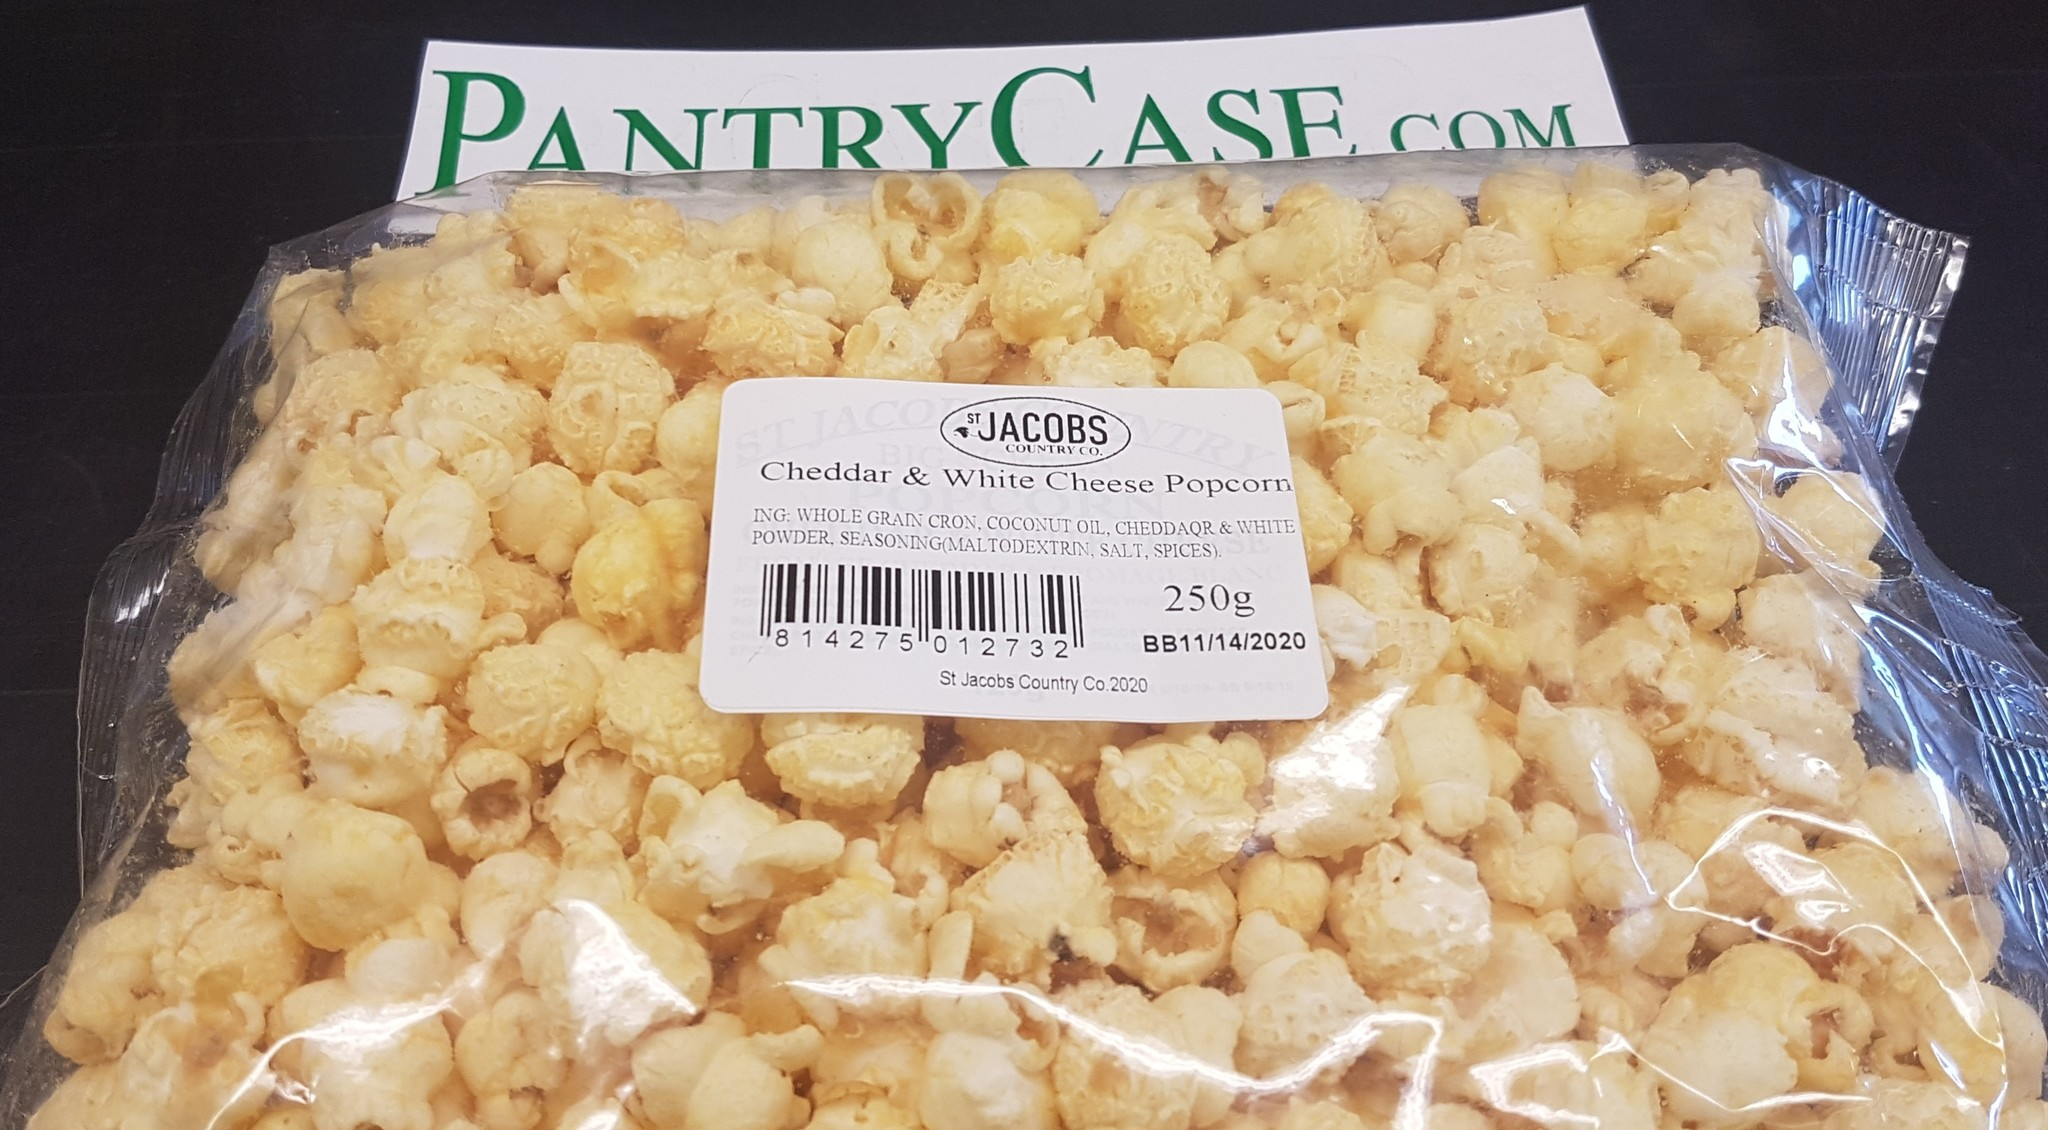 St Jacobs Country Cheddar & White Cheese Popcorn x150g